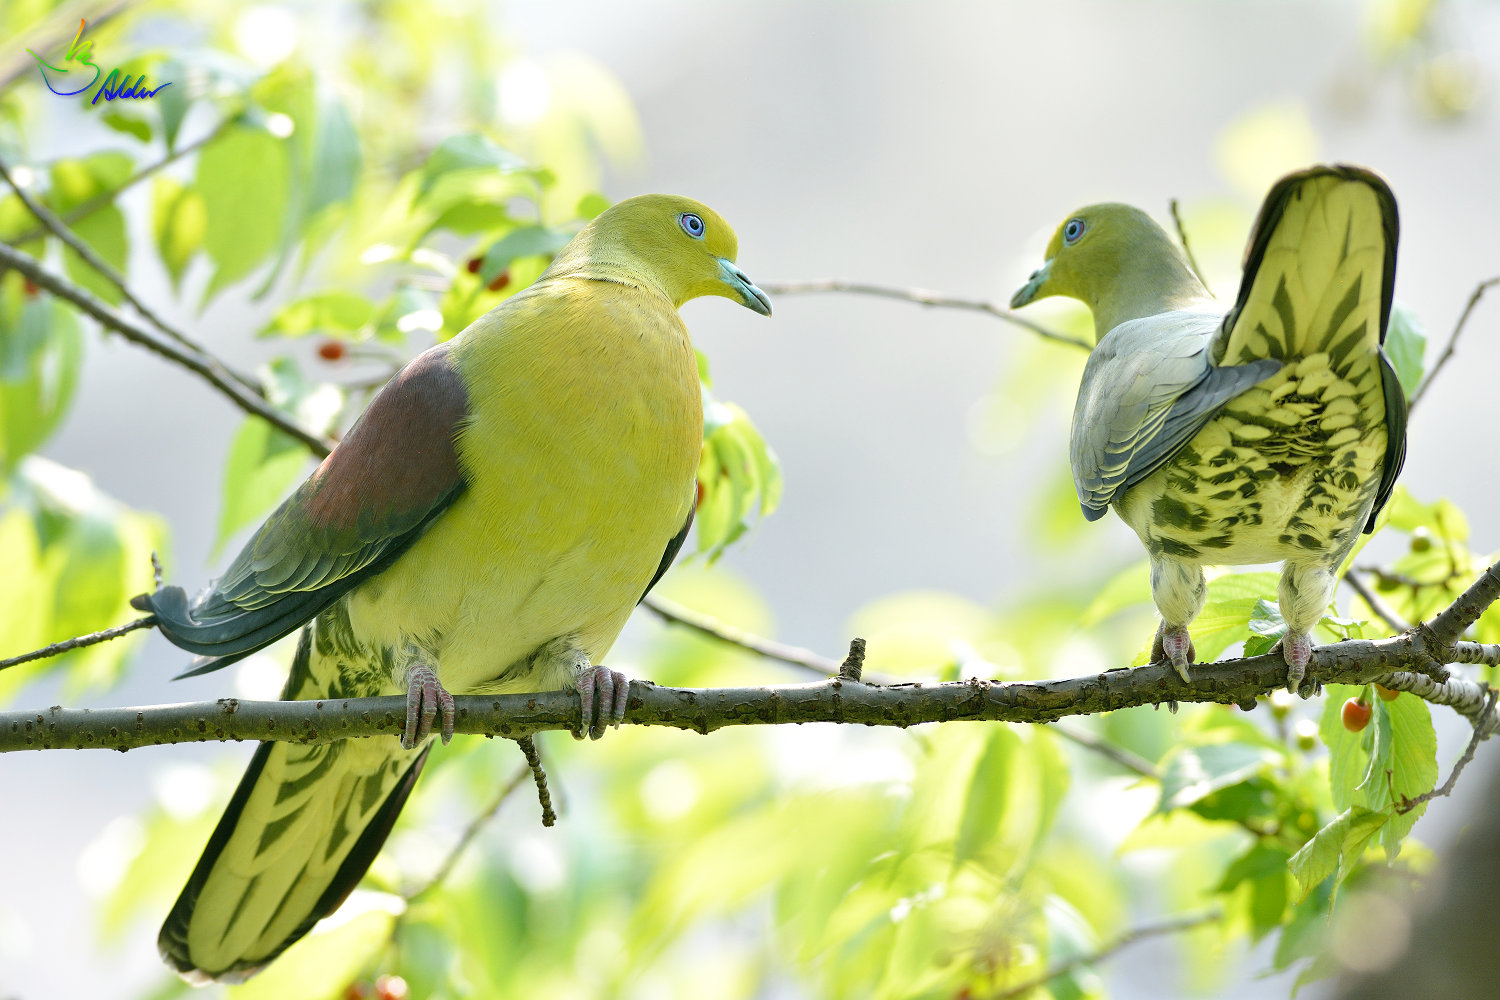 White-bellied_Green_Pigeon_6083